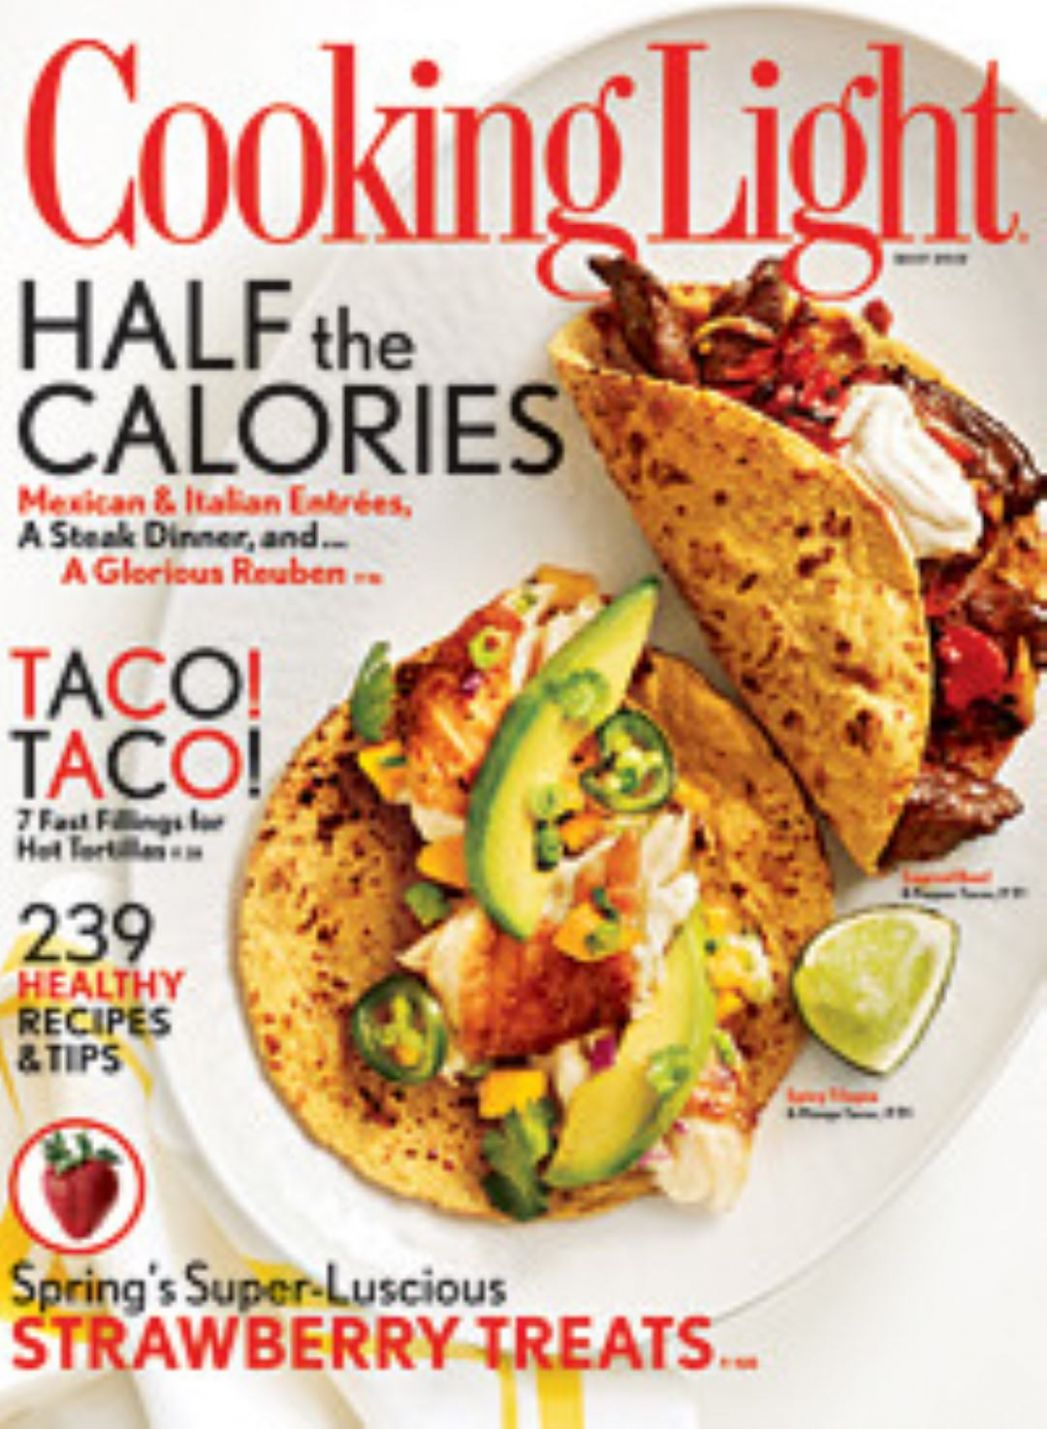 Healthy Eating Magazines We Love - Three Bakers